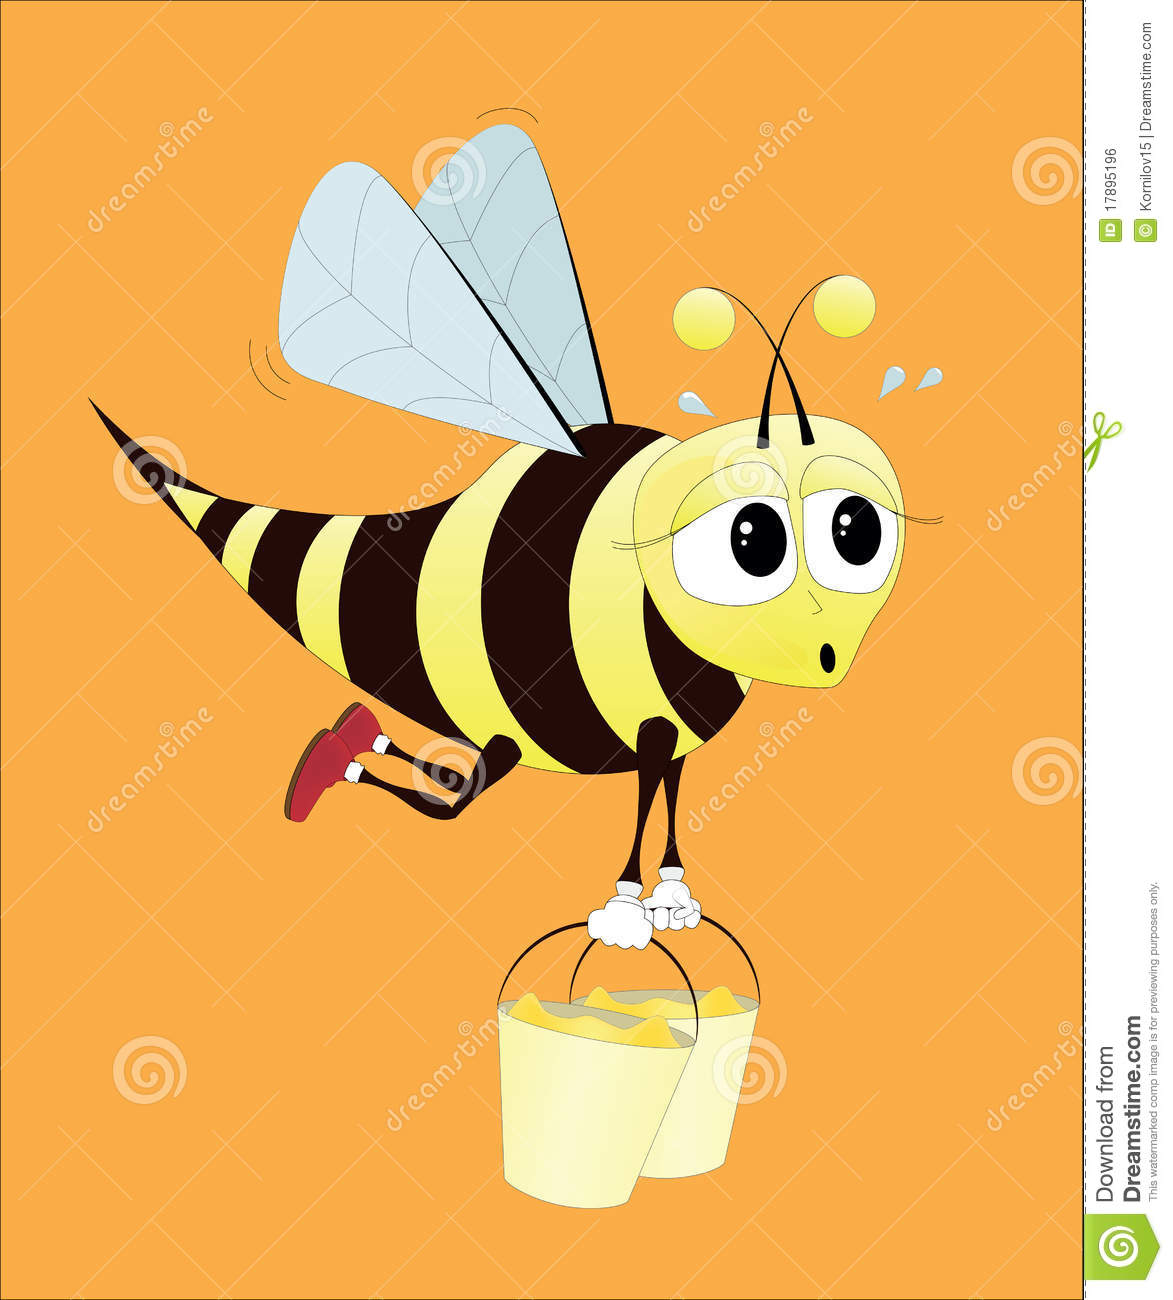 Happy Bee Royalty Free Vector Image  VectorStock